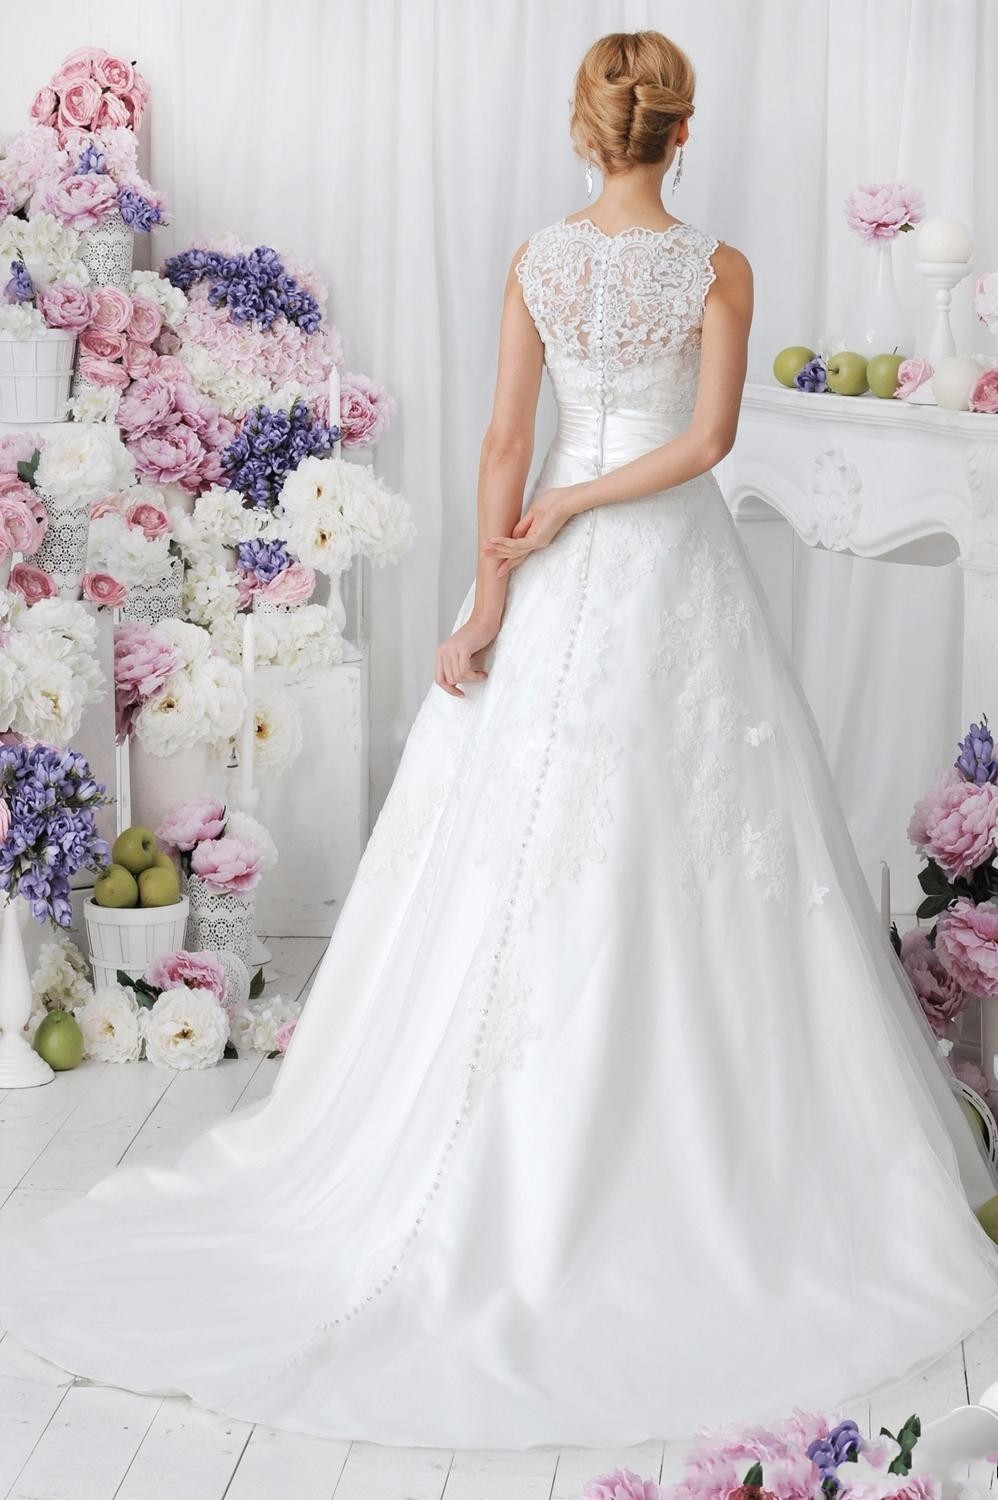 Lace Wedding Dress With Detachable Skirt at Bling Brides Bouquet online bridal s image 5